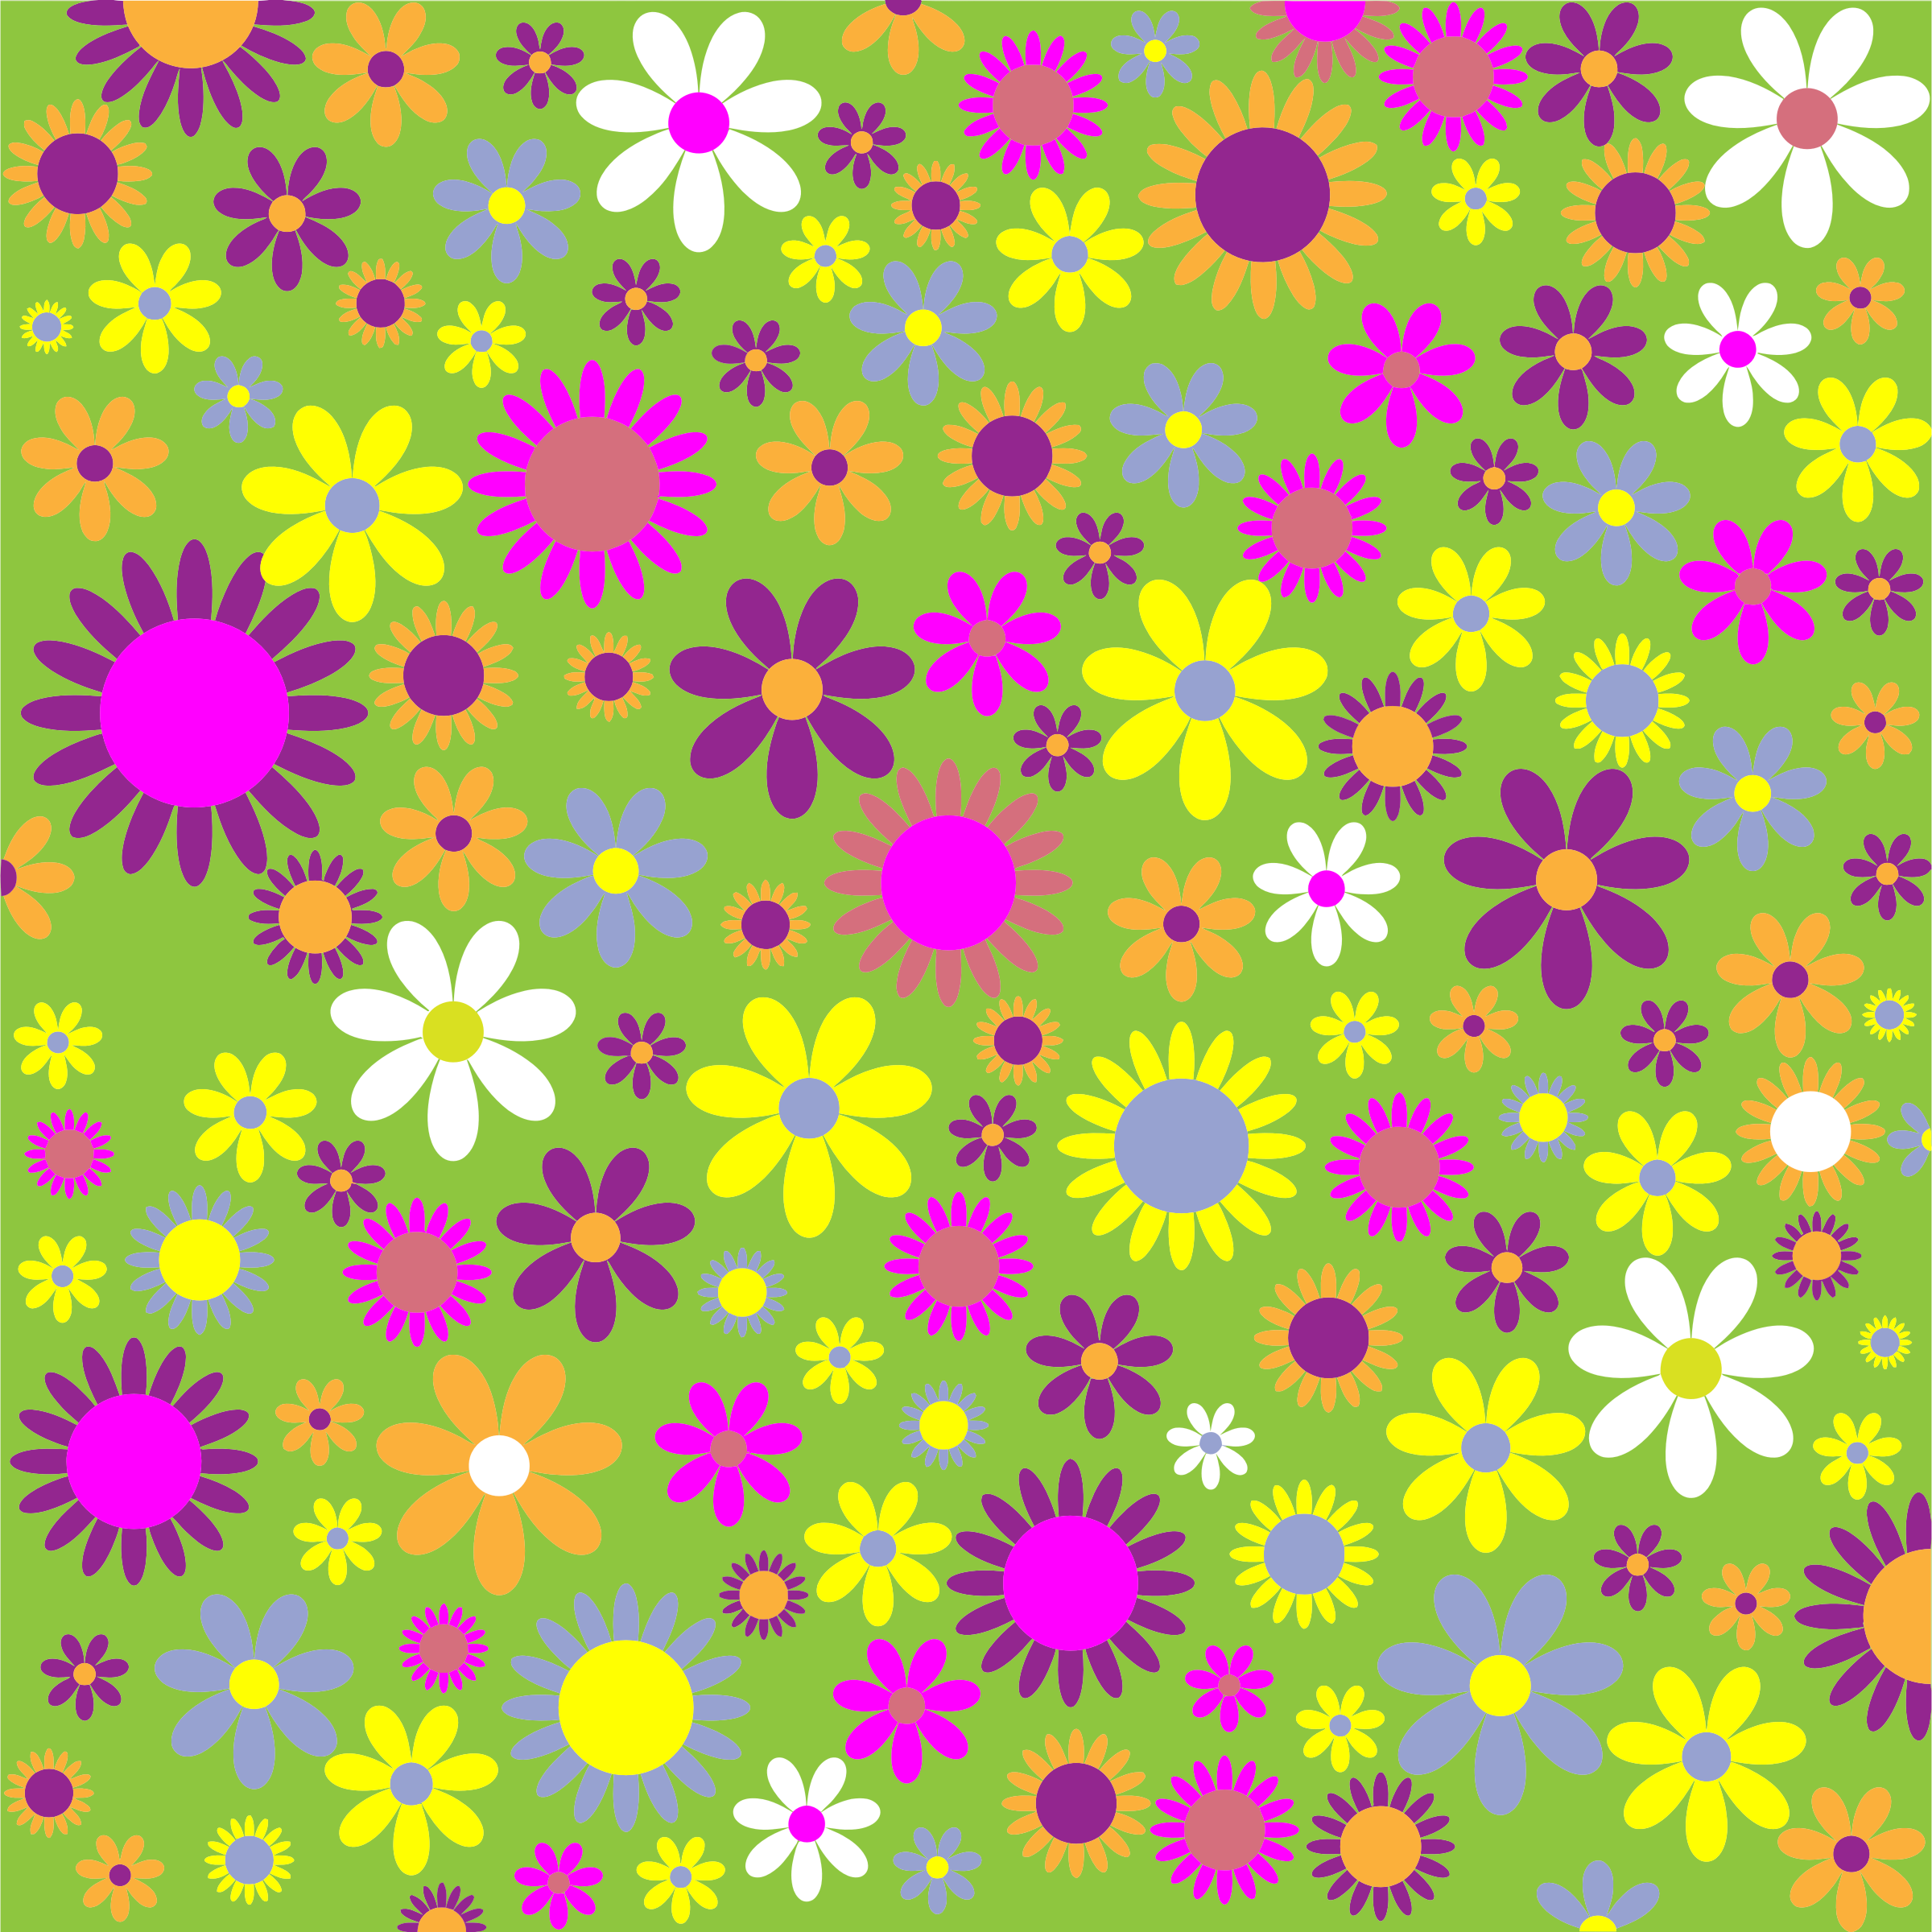 Free Background Floral Cliparts, Download Free Clip Art, Free Clip.